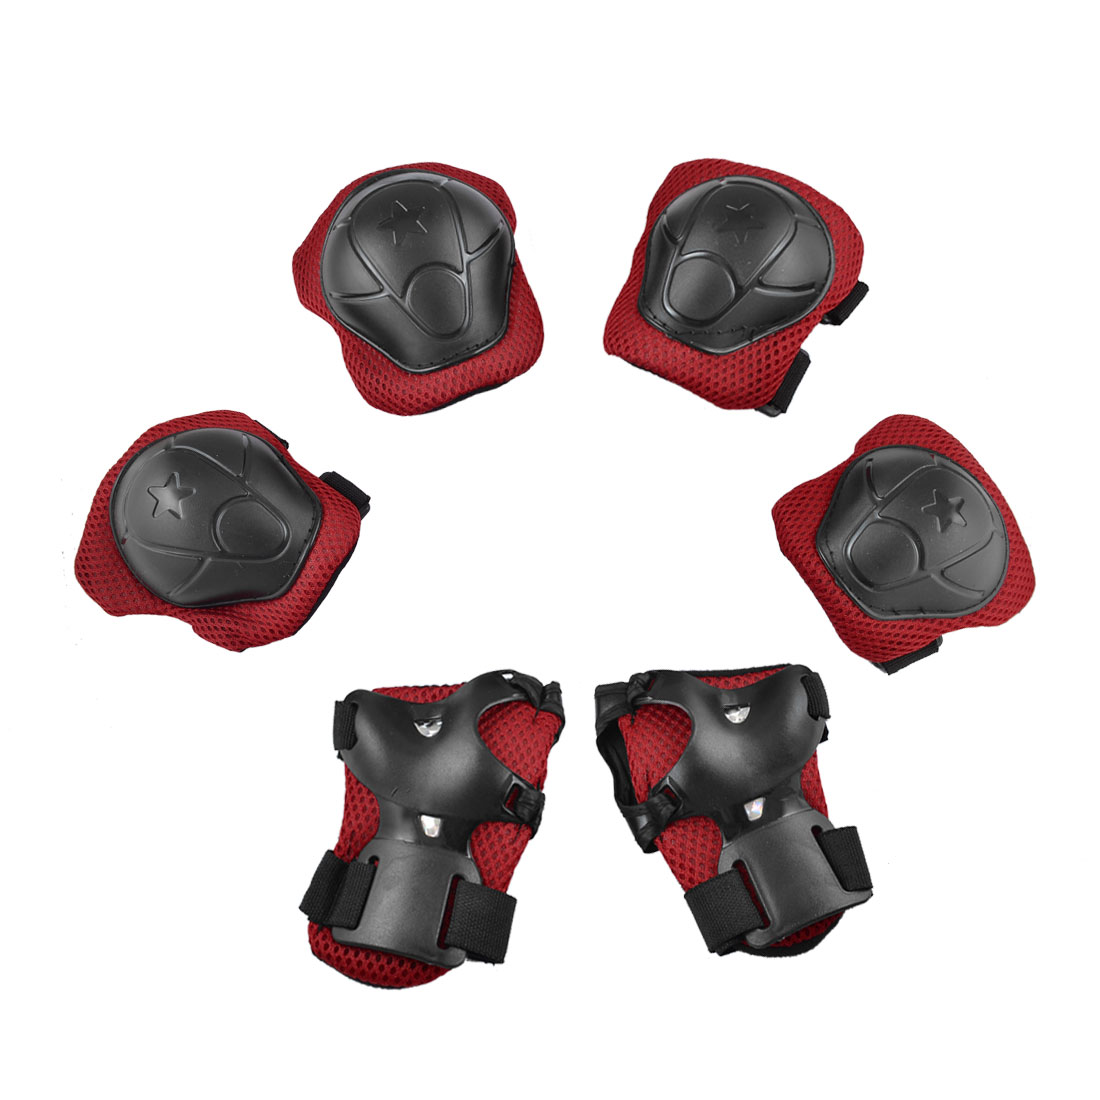 Children Extreme Sport Protective Gear Wrist Support Guard Elbow Knee Pads Set by Unique-Bargains